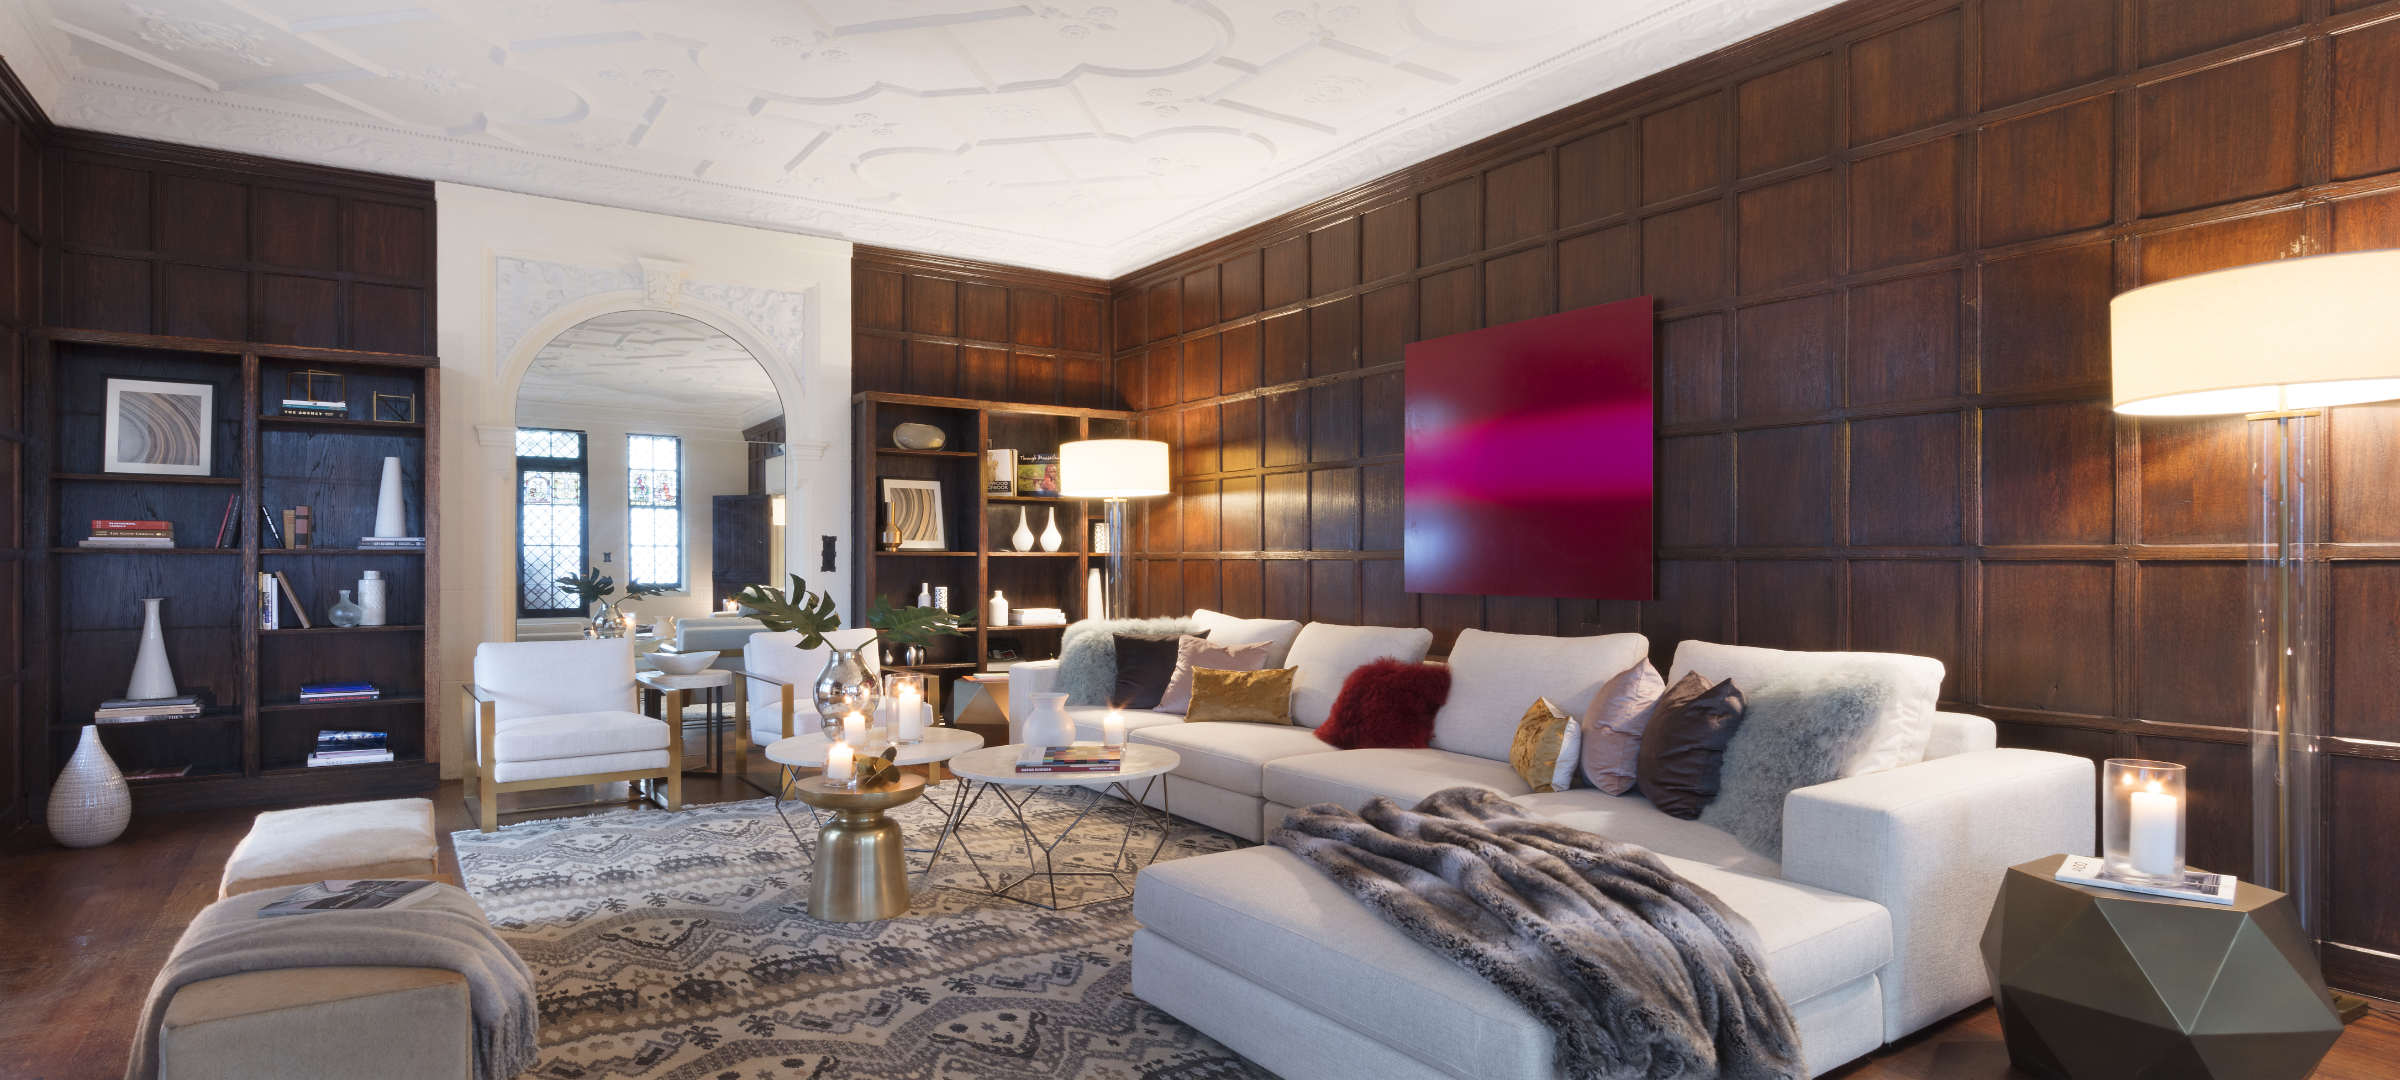 SBSG Interior Design Living Room 91 Central Park West, NY